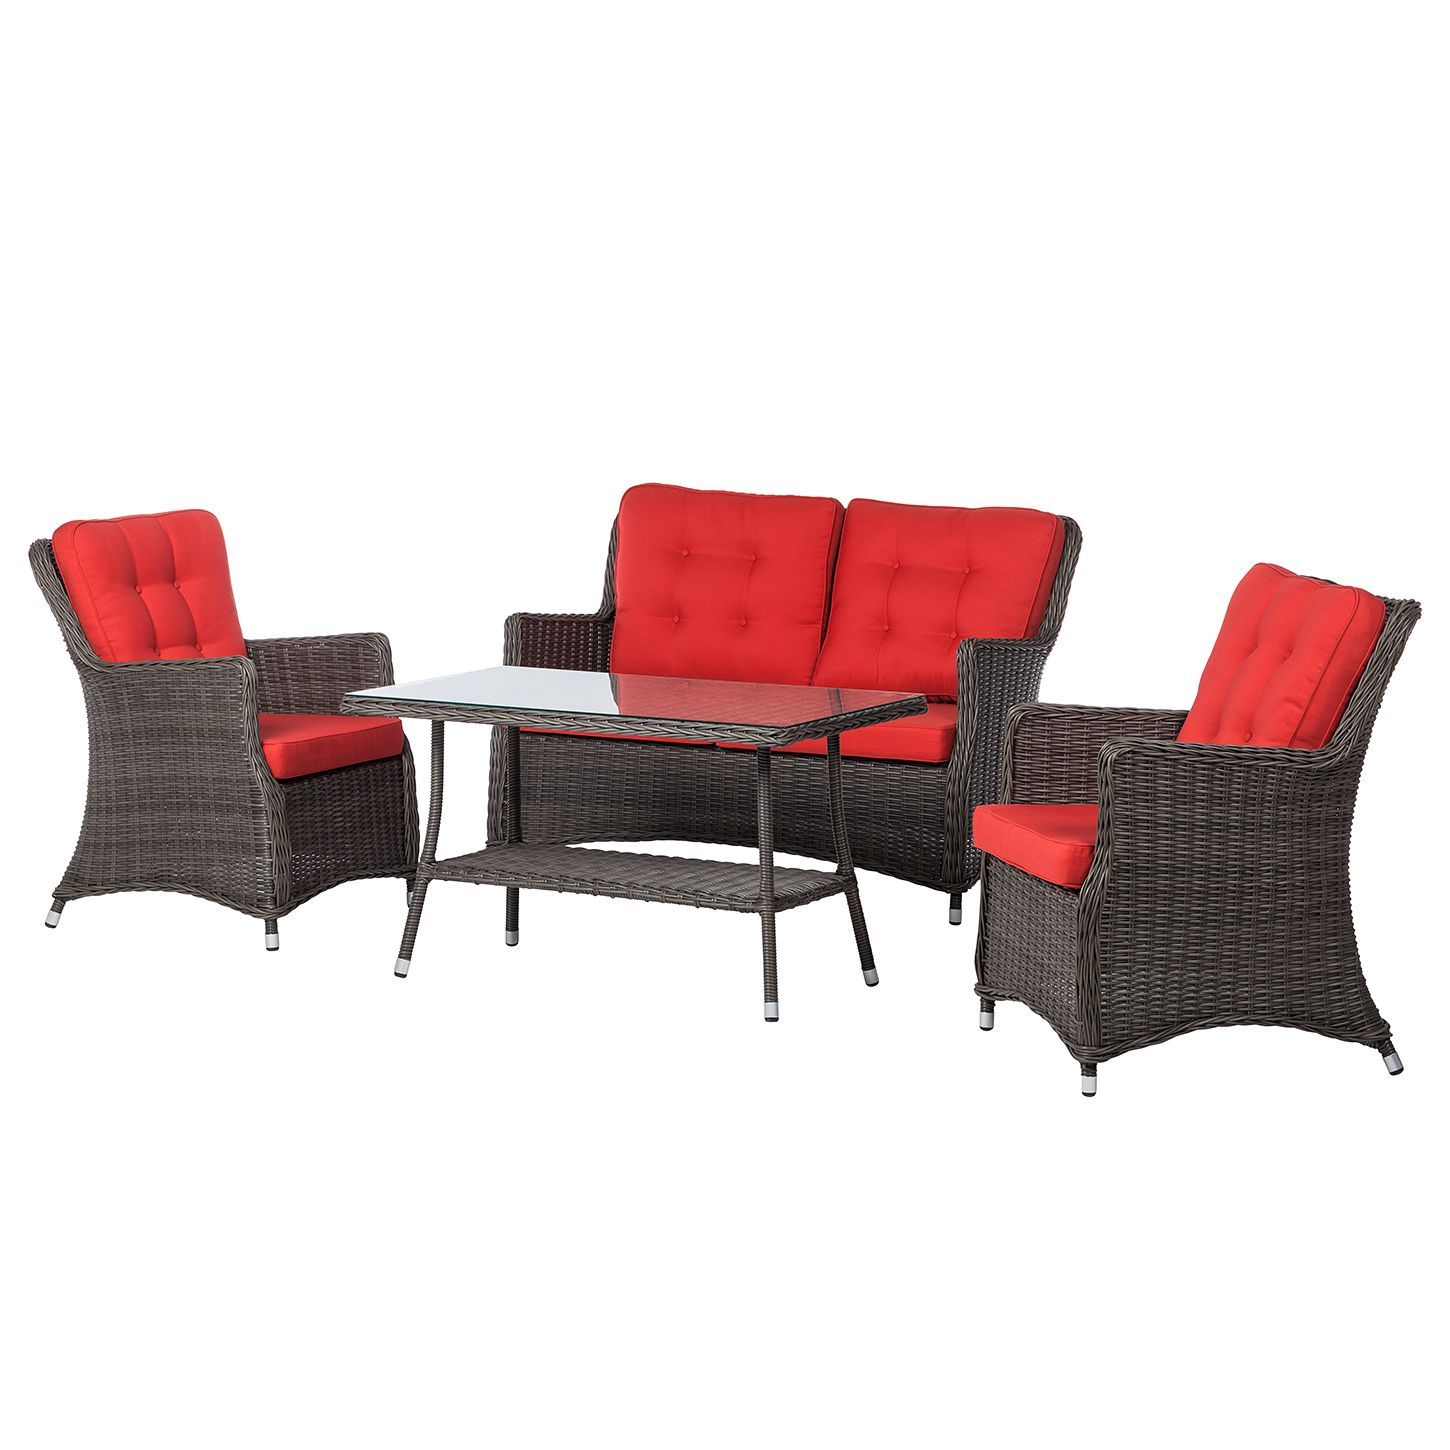 Balkonmöbel Lounge-set Merano Pin By Ladendirekt On Gartenmöbel Outdoor Furniture Sets Outdoor